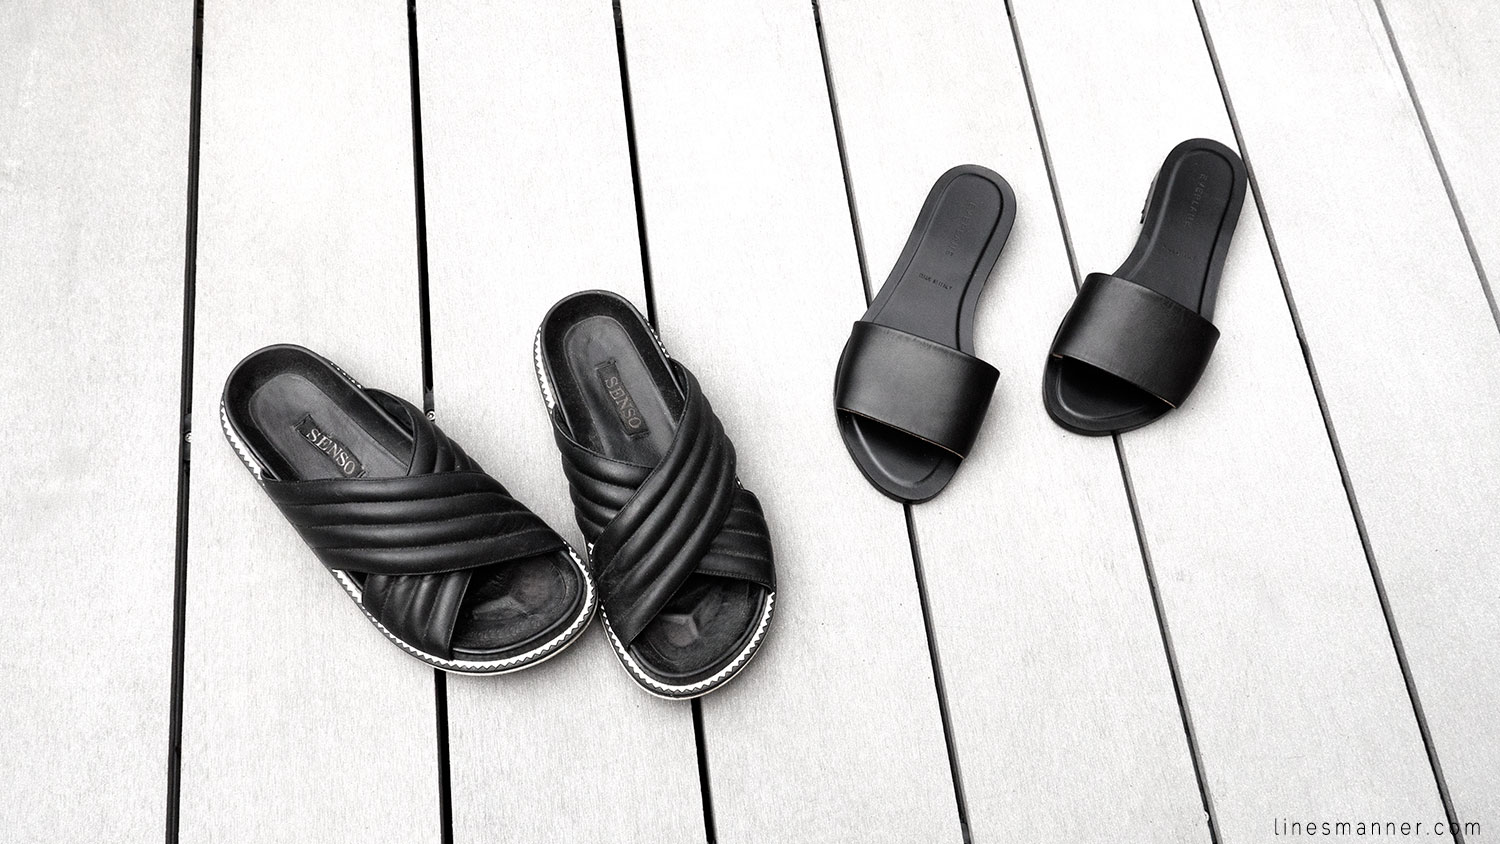 Lines-Manner-Summer-Shoes-Slides-Black-Leather-Minimal-Off_Duty-Senso_Everlane-Birkenstock-Essentials-Situation-1